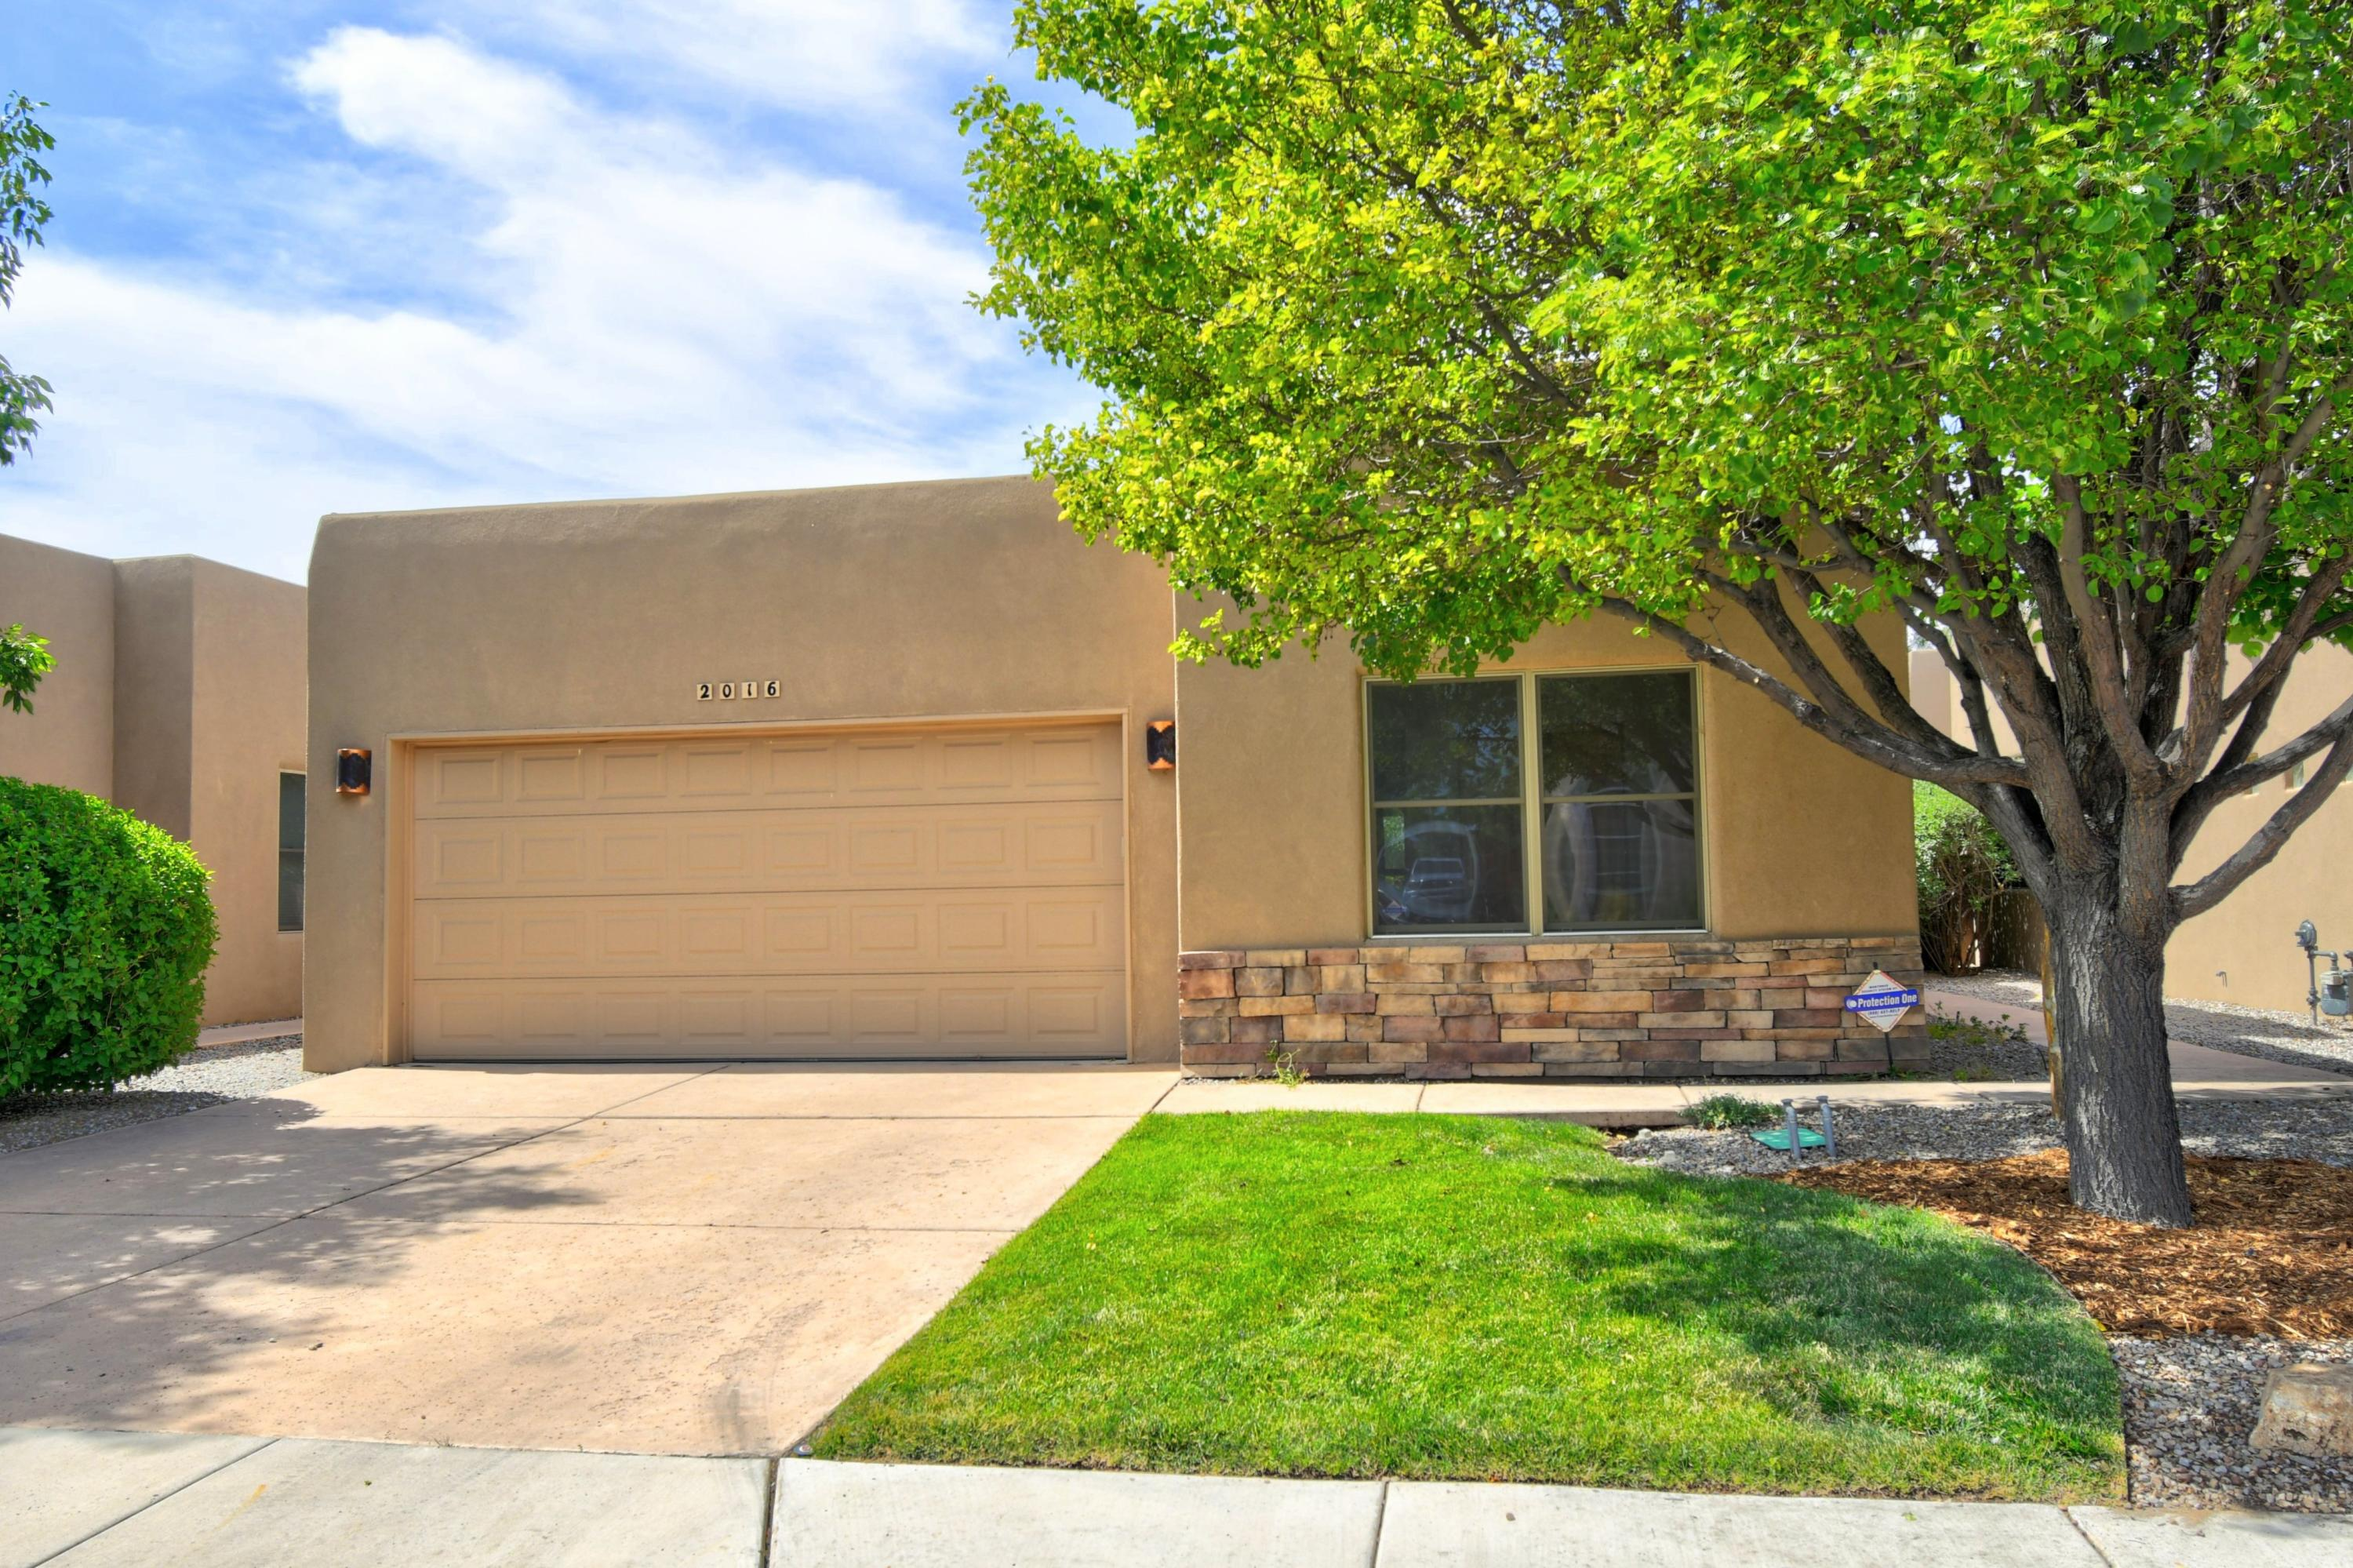 Back on the Market.  Don't miss this lovely one story 3 bedroom or 2 plus office in N. Valley gated sub. again.  Home is move in ready with all tile flooring, wood beams, great room, formal dining area with nicho, kitchen with Bosch stainless gas range, microwave, dishwasher, two pantries, and granite countertops. Two car garage features shelving and cupboards for extra storage, water softener, also home features radiant floor heat and refrigerated AC.  Property backs to walking trail.